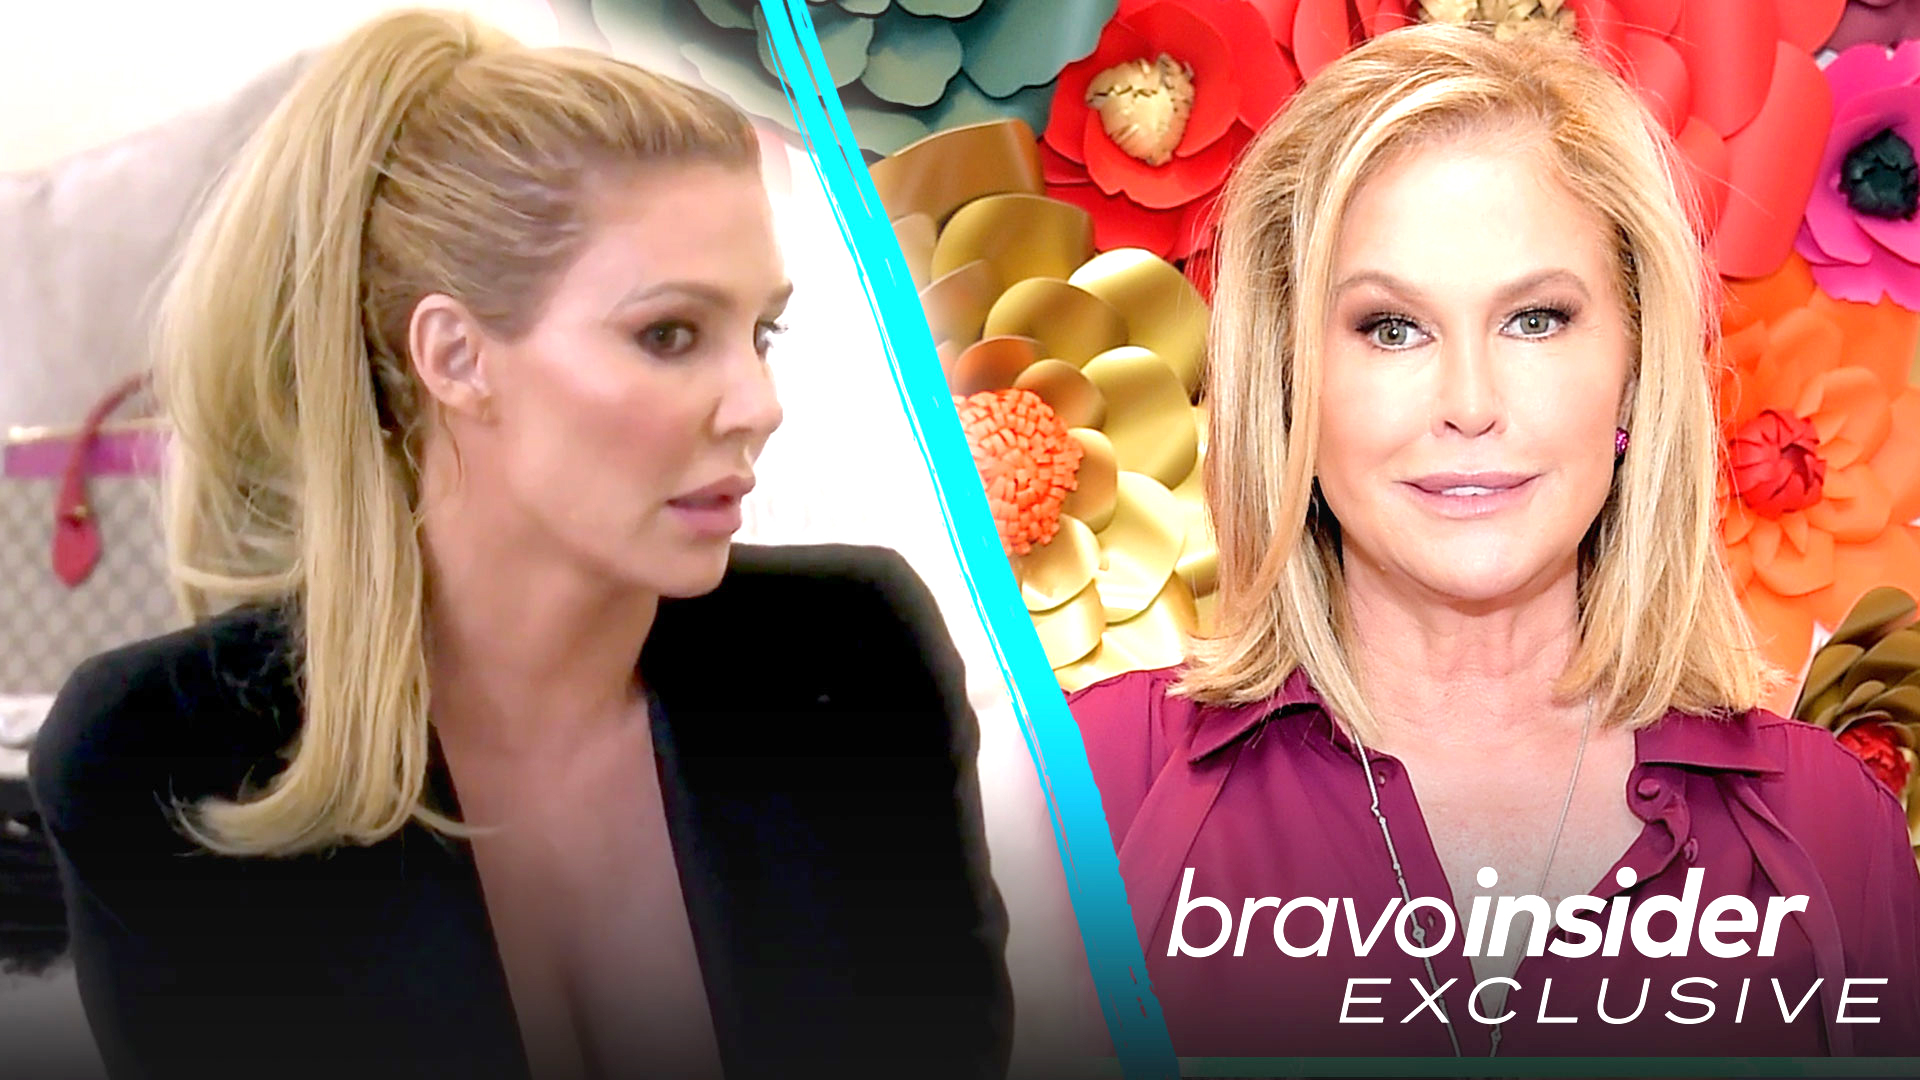 RHOBH Producer Shuts Down Fan Theory About Brandi Glanville, Weighs in on Kathy Hilton Casting Rumors